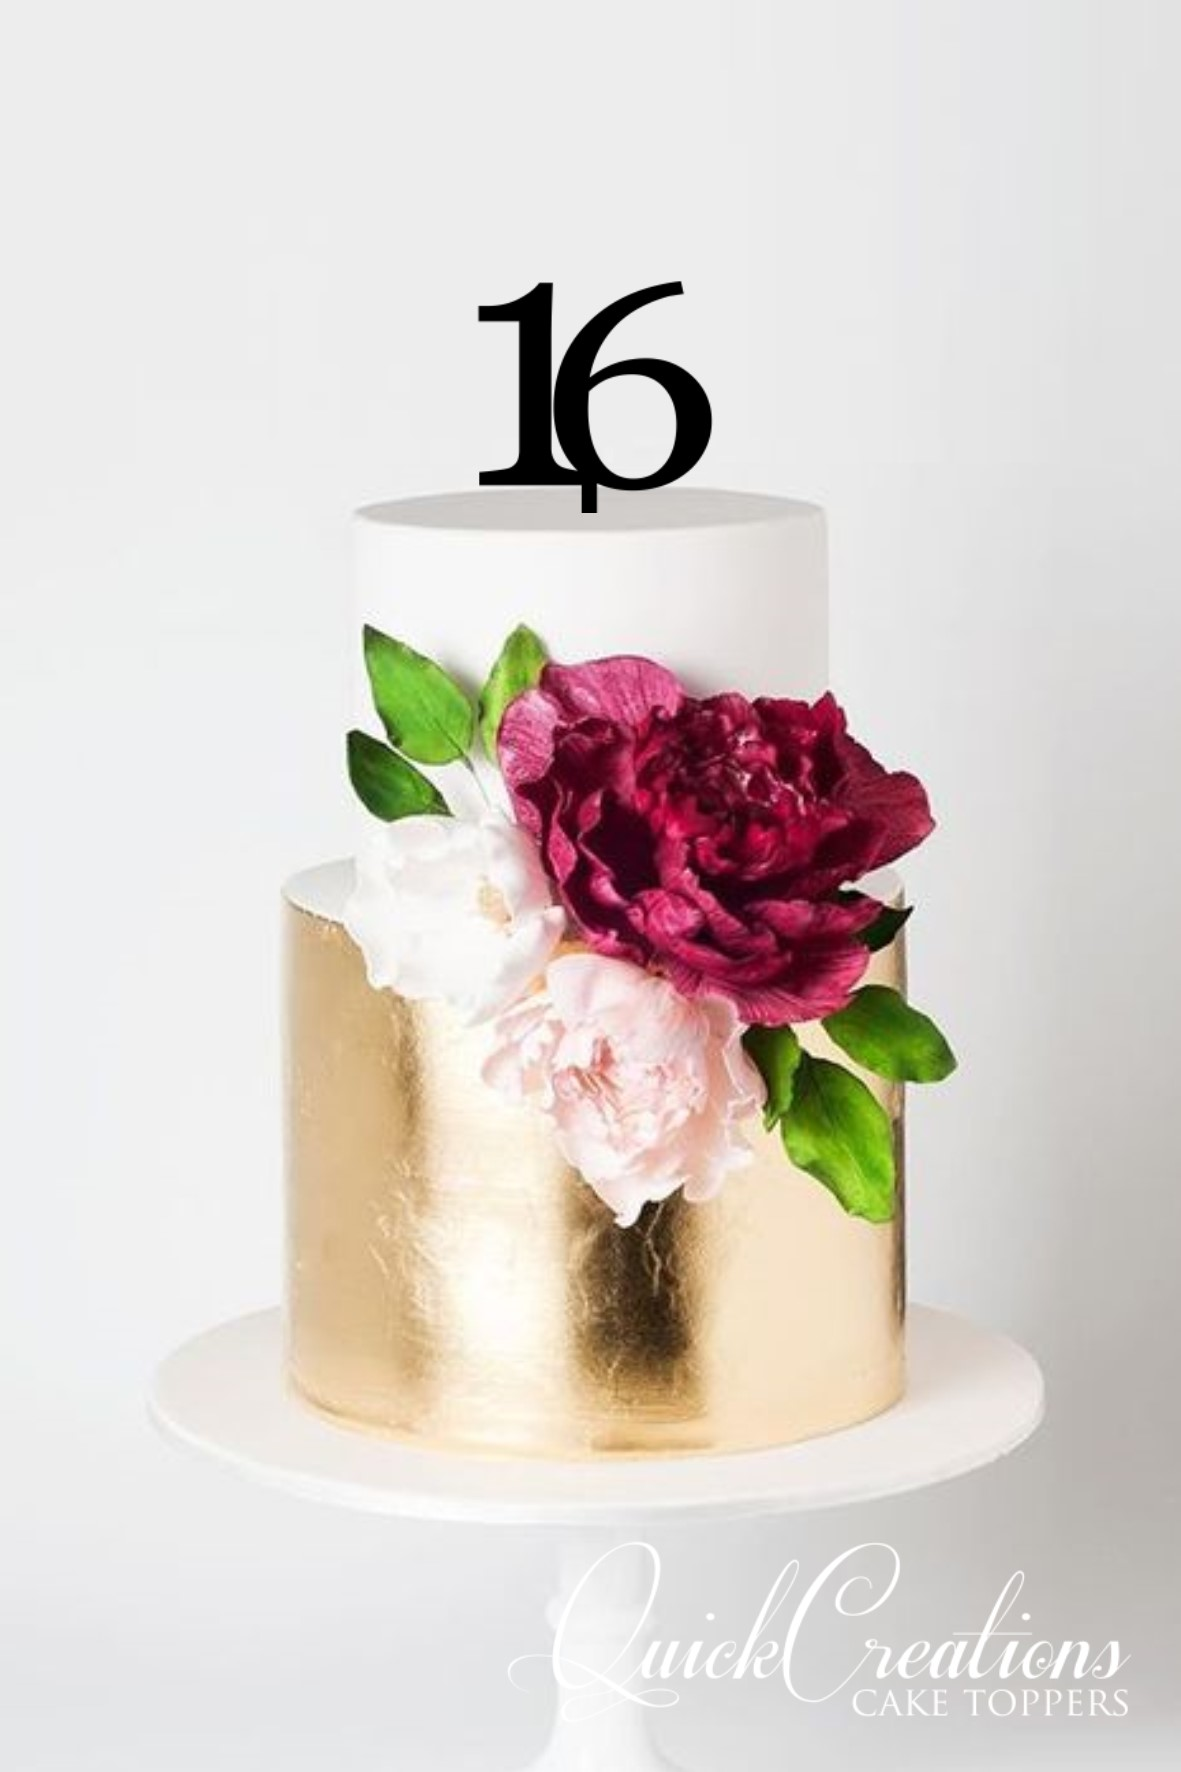 Quick Creations Cake Topper - 16